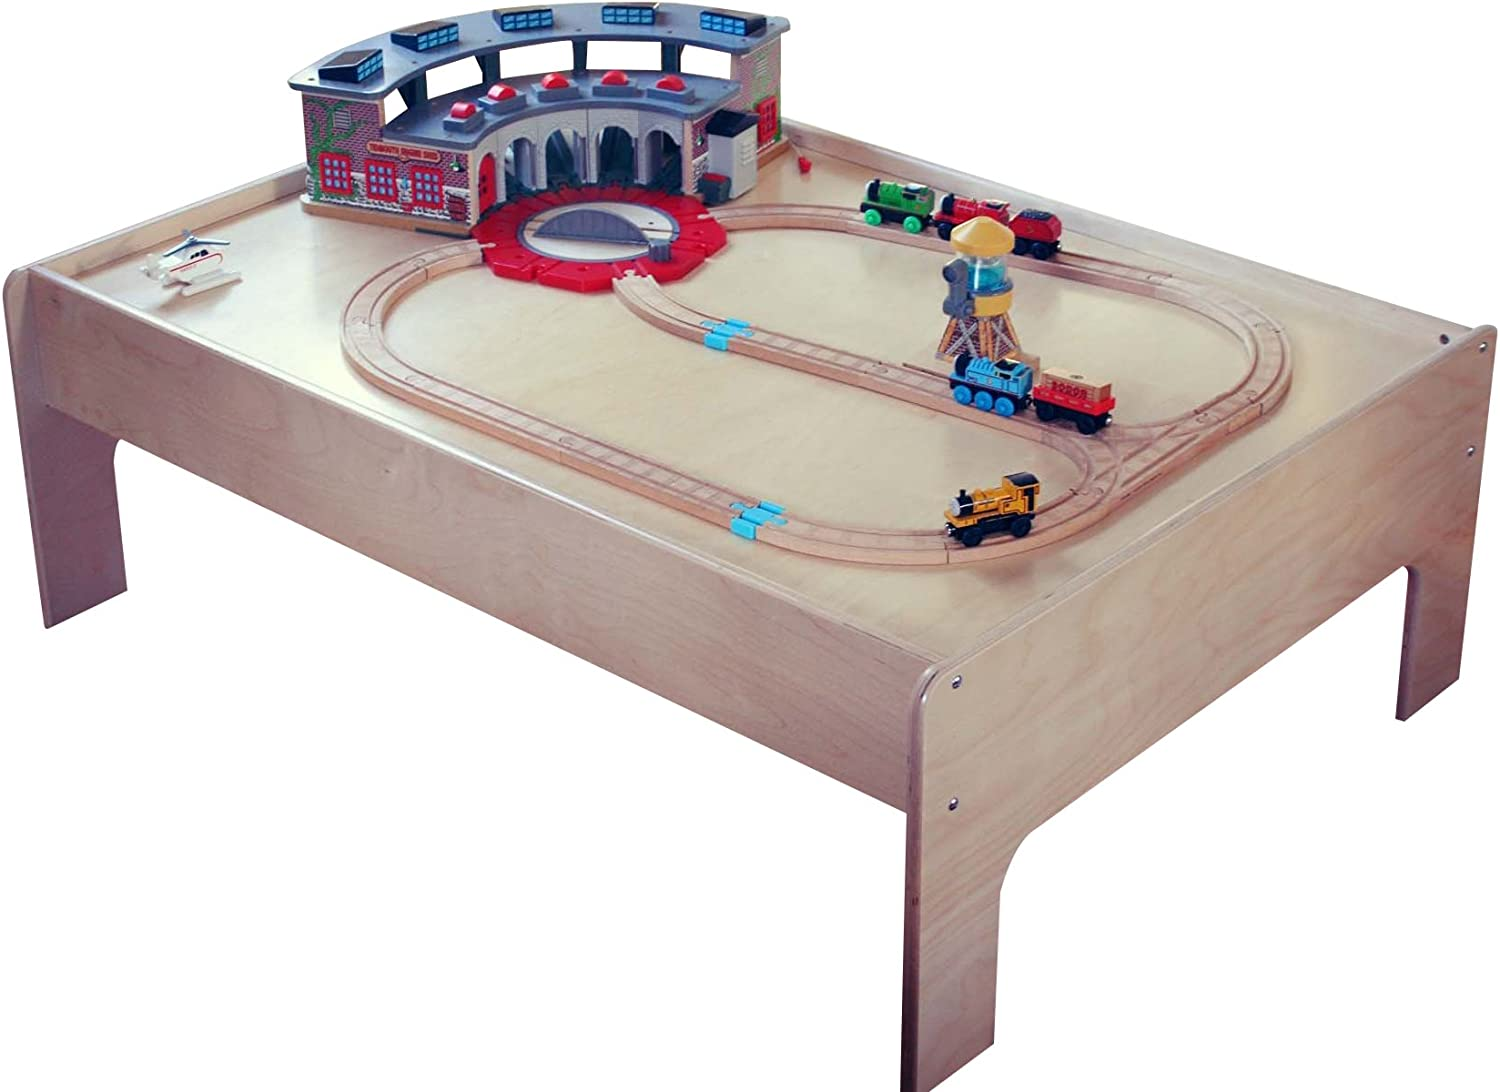 Top 10 Best Train Table For Toddlers (2020 Reviews & Buying Guide) 10